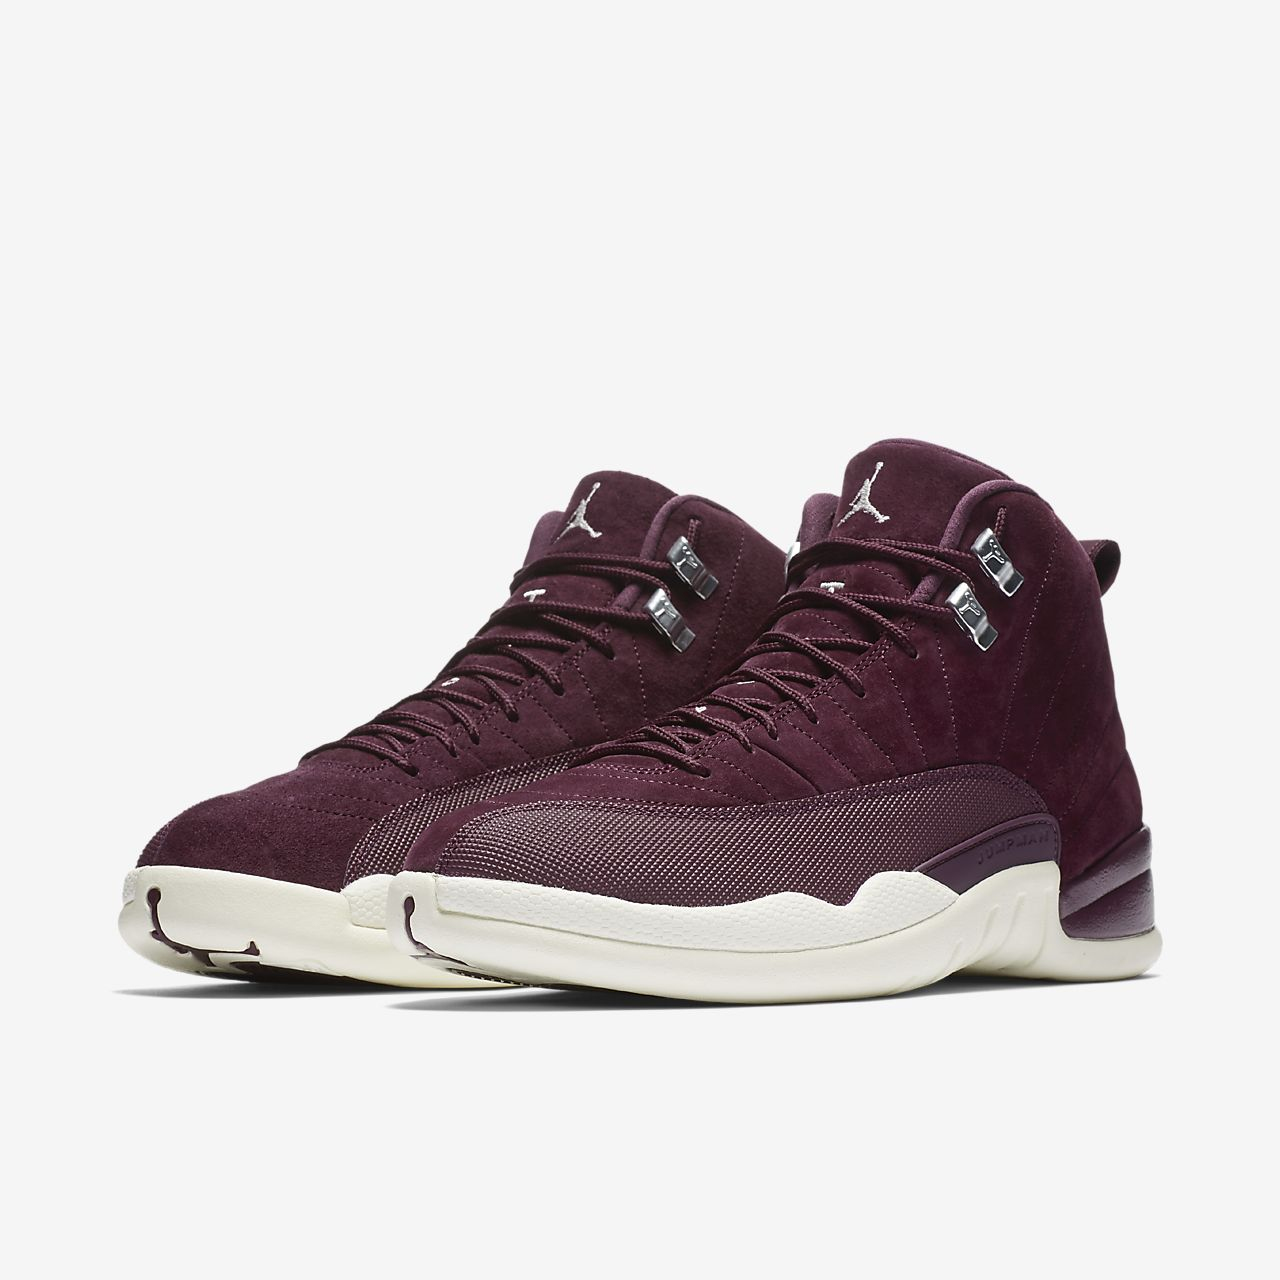 Brand Jordan shoe styles have blazed the trail for decades and continue to do so with the latest retro styles and releases. From new to classic colorways, find the pair of men's retro Jordan shoes that suits your personality, and combine them with Jordan clothing to complete your look.